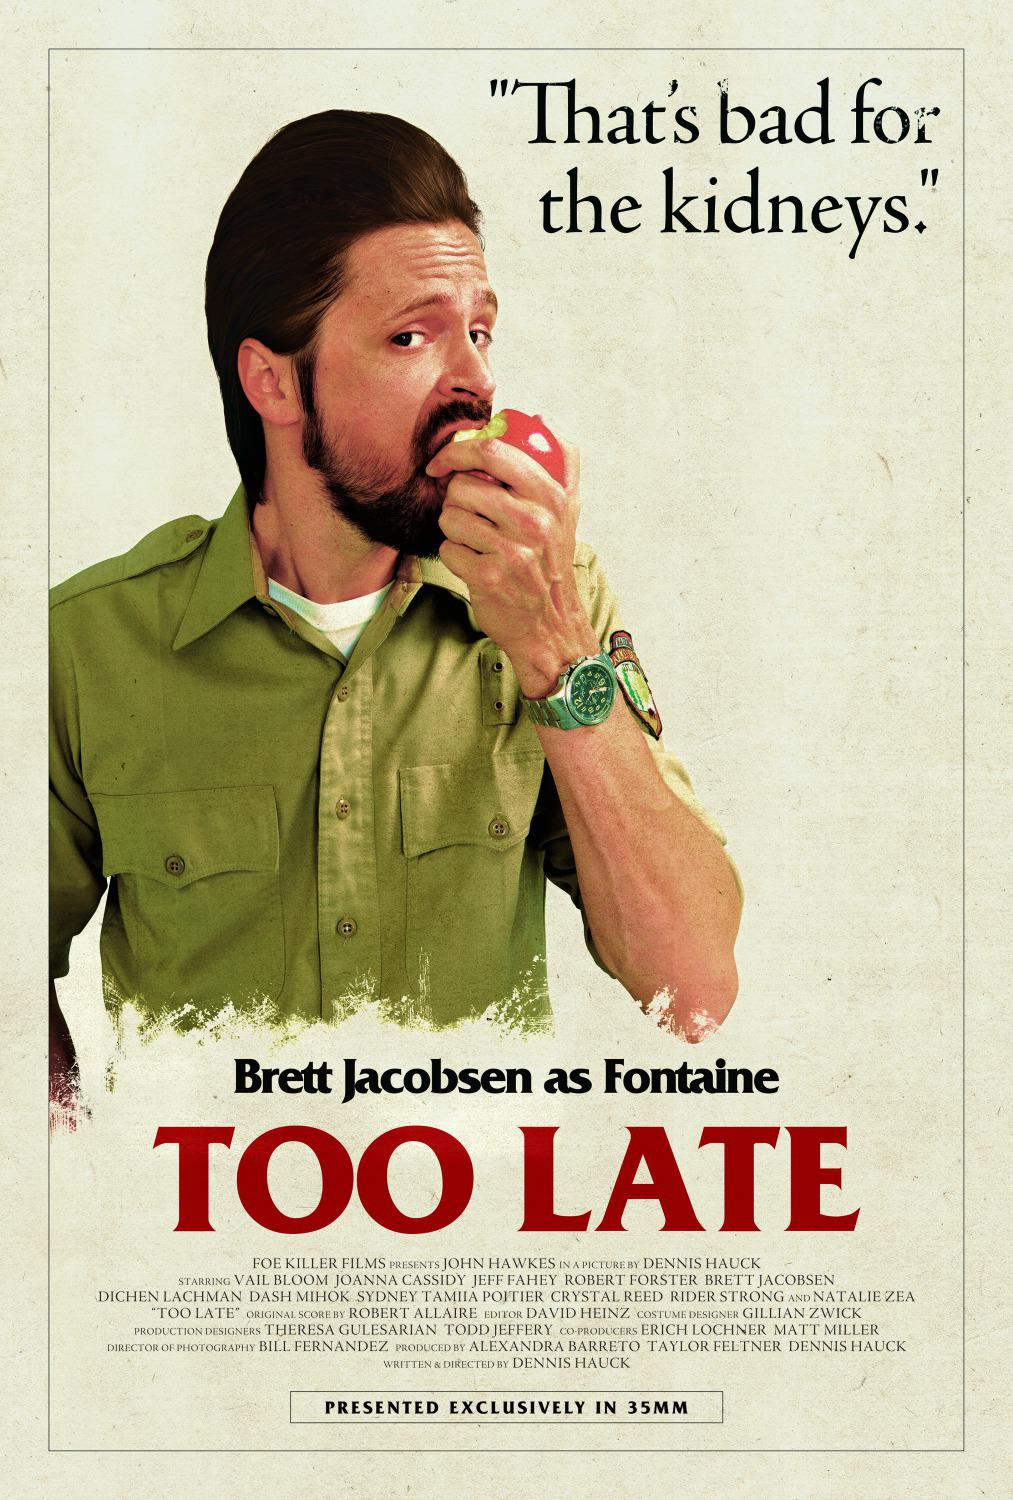 Troppo Tardi - Too Late - Brett Jacobsen as Fontaine